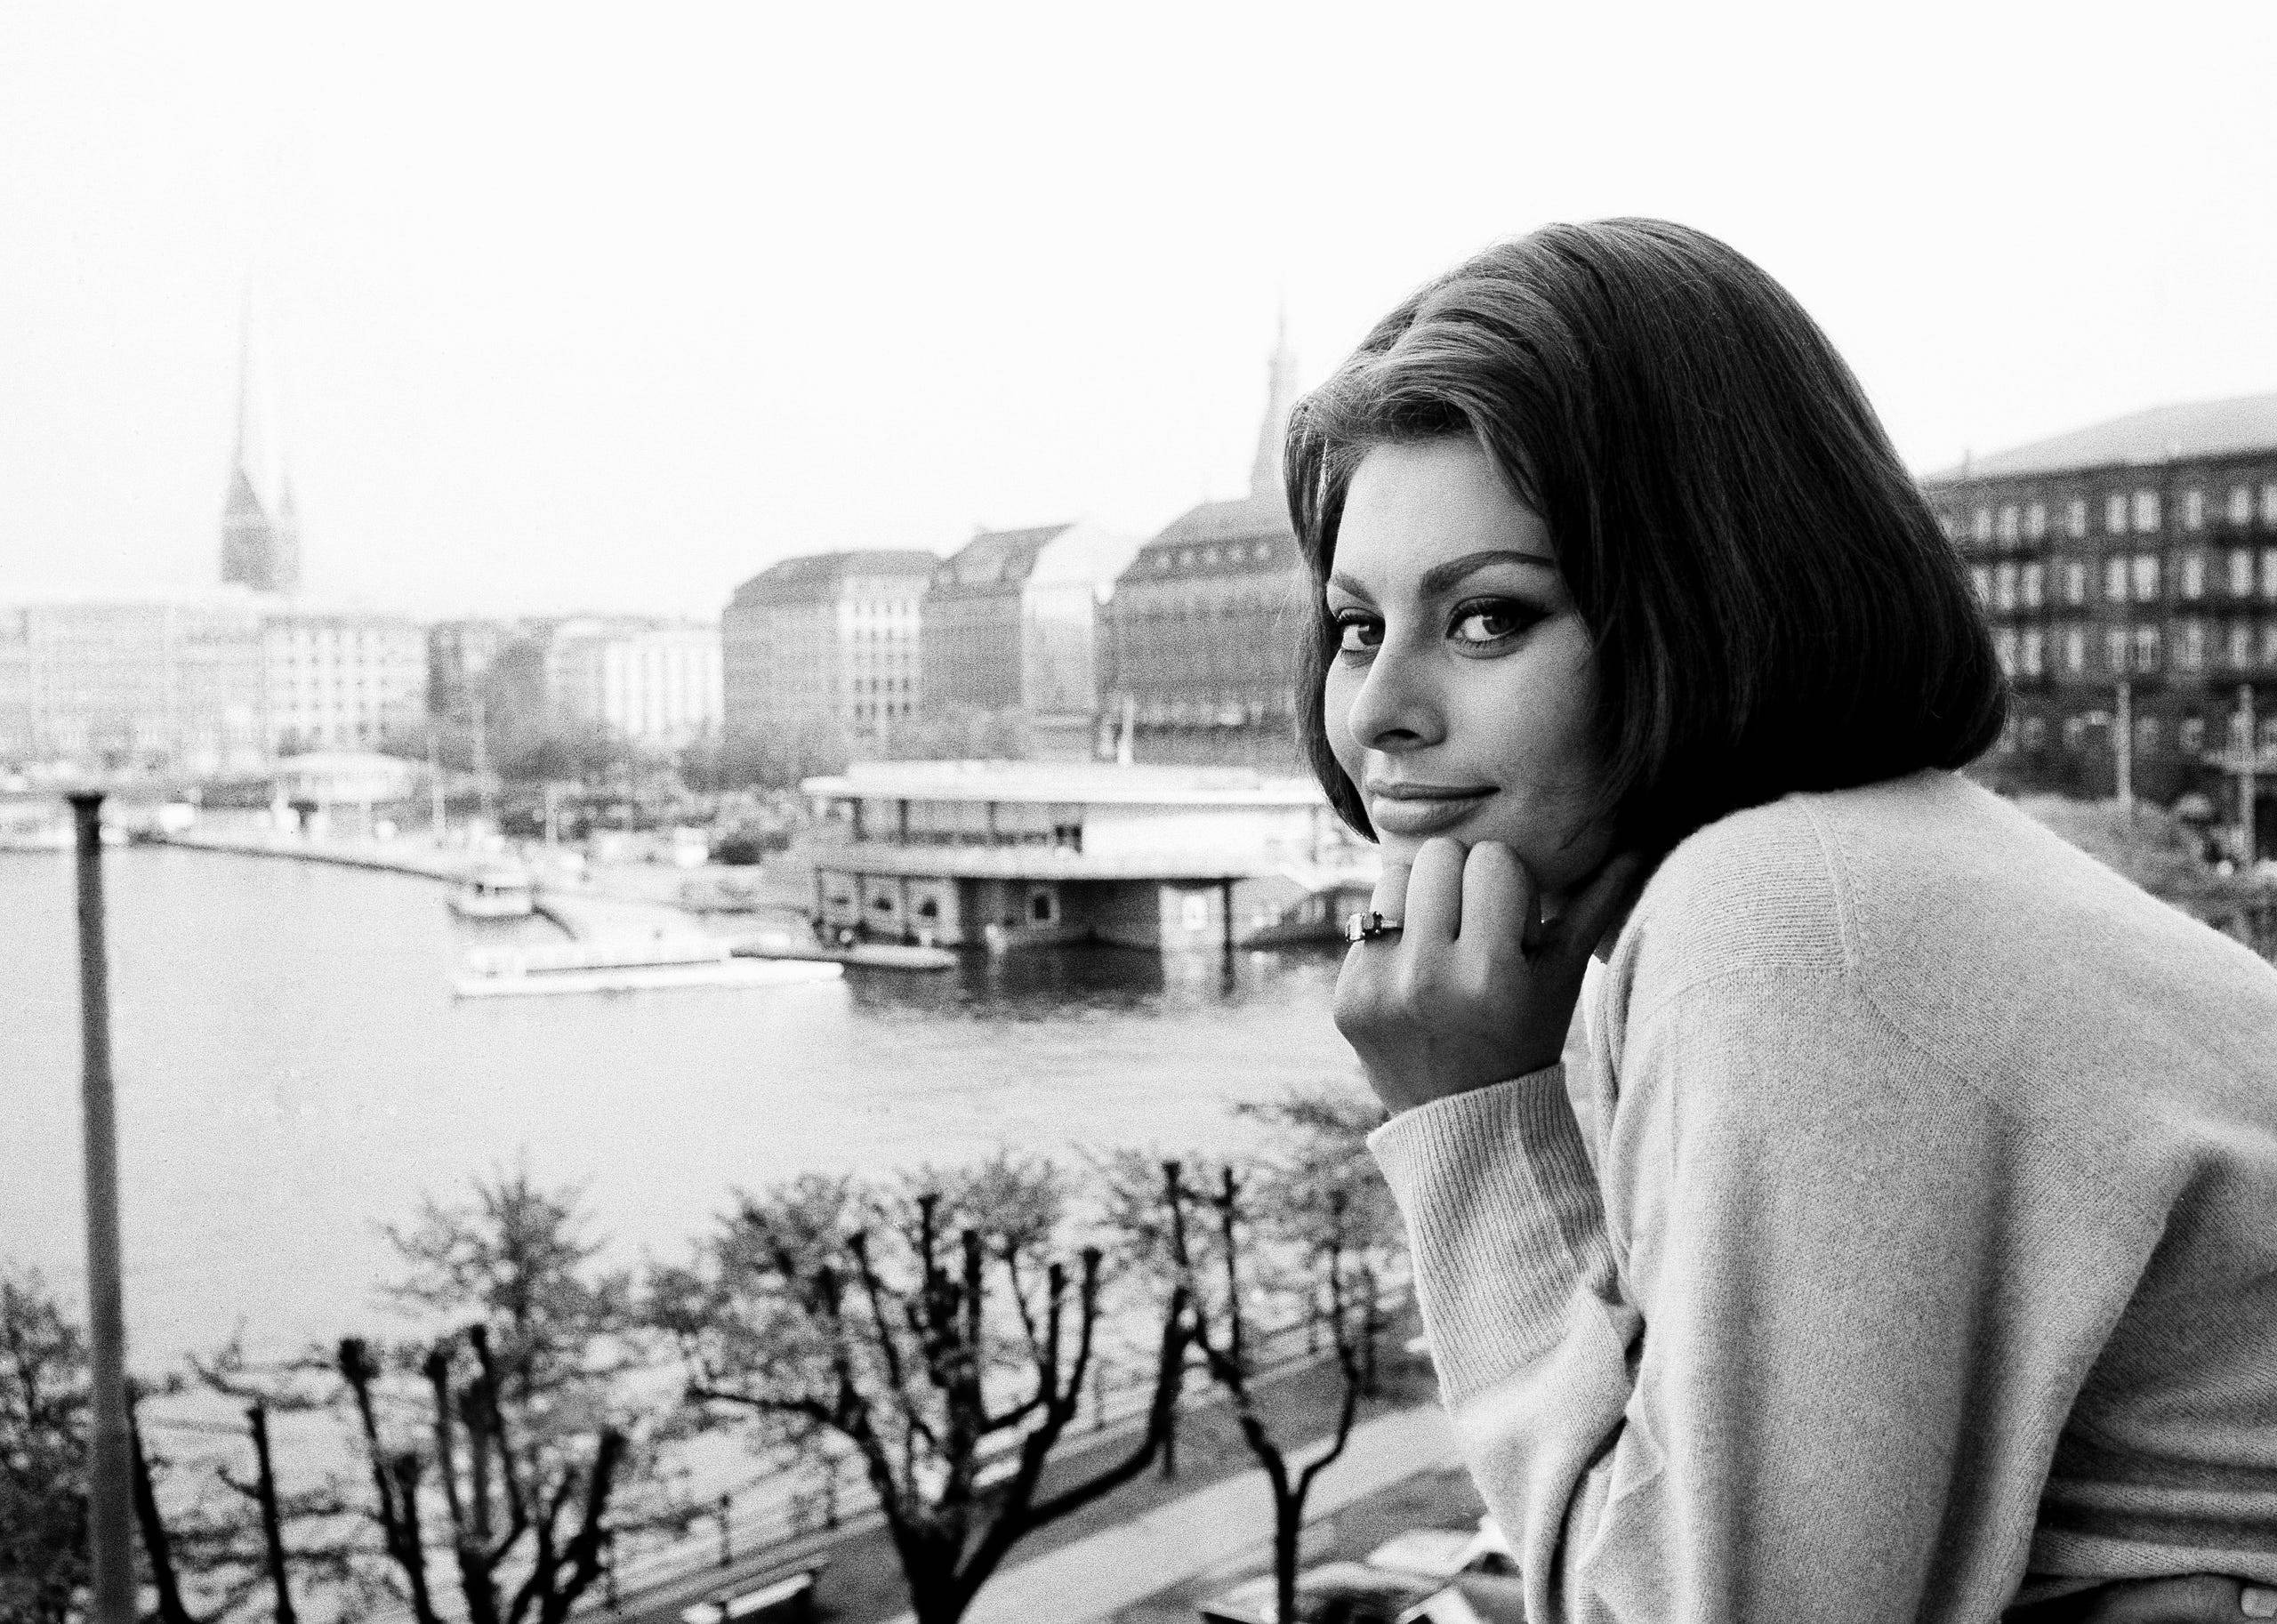 Loren at the window of her room in the hotel Vier Jahreszeiten (Four Seasons) in Hamburg on May 21, 1962.